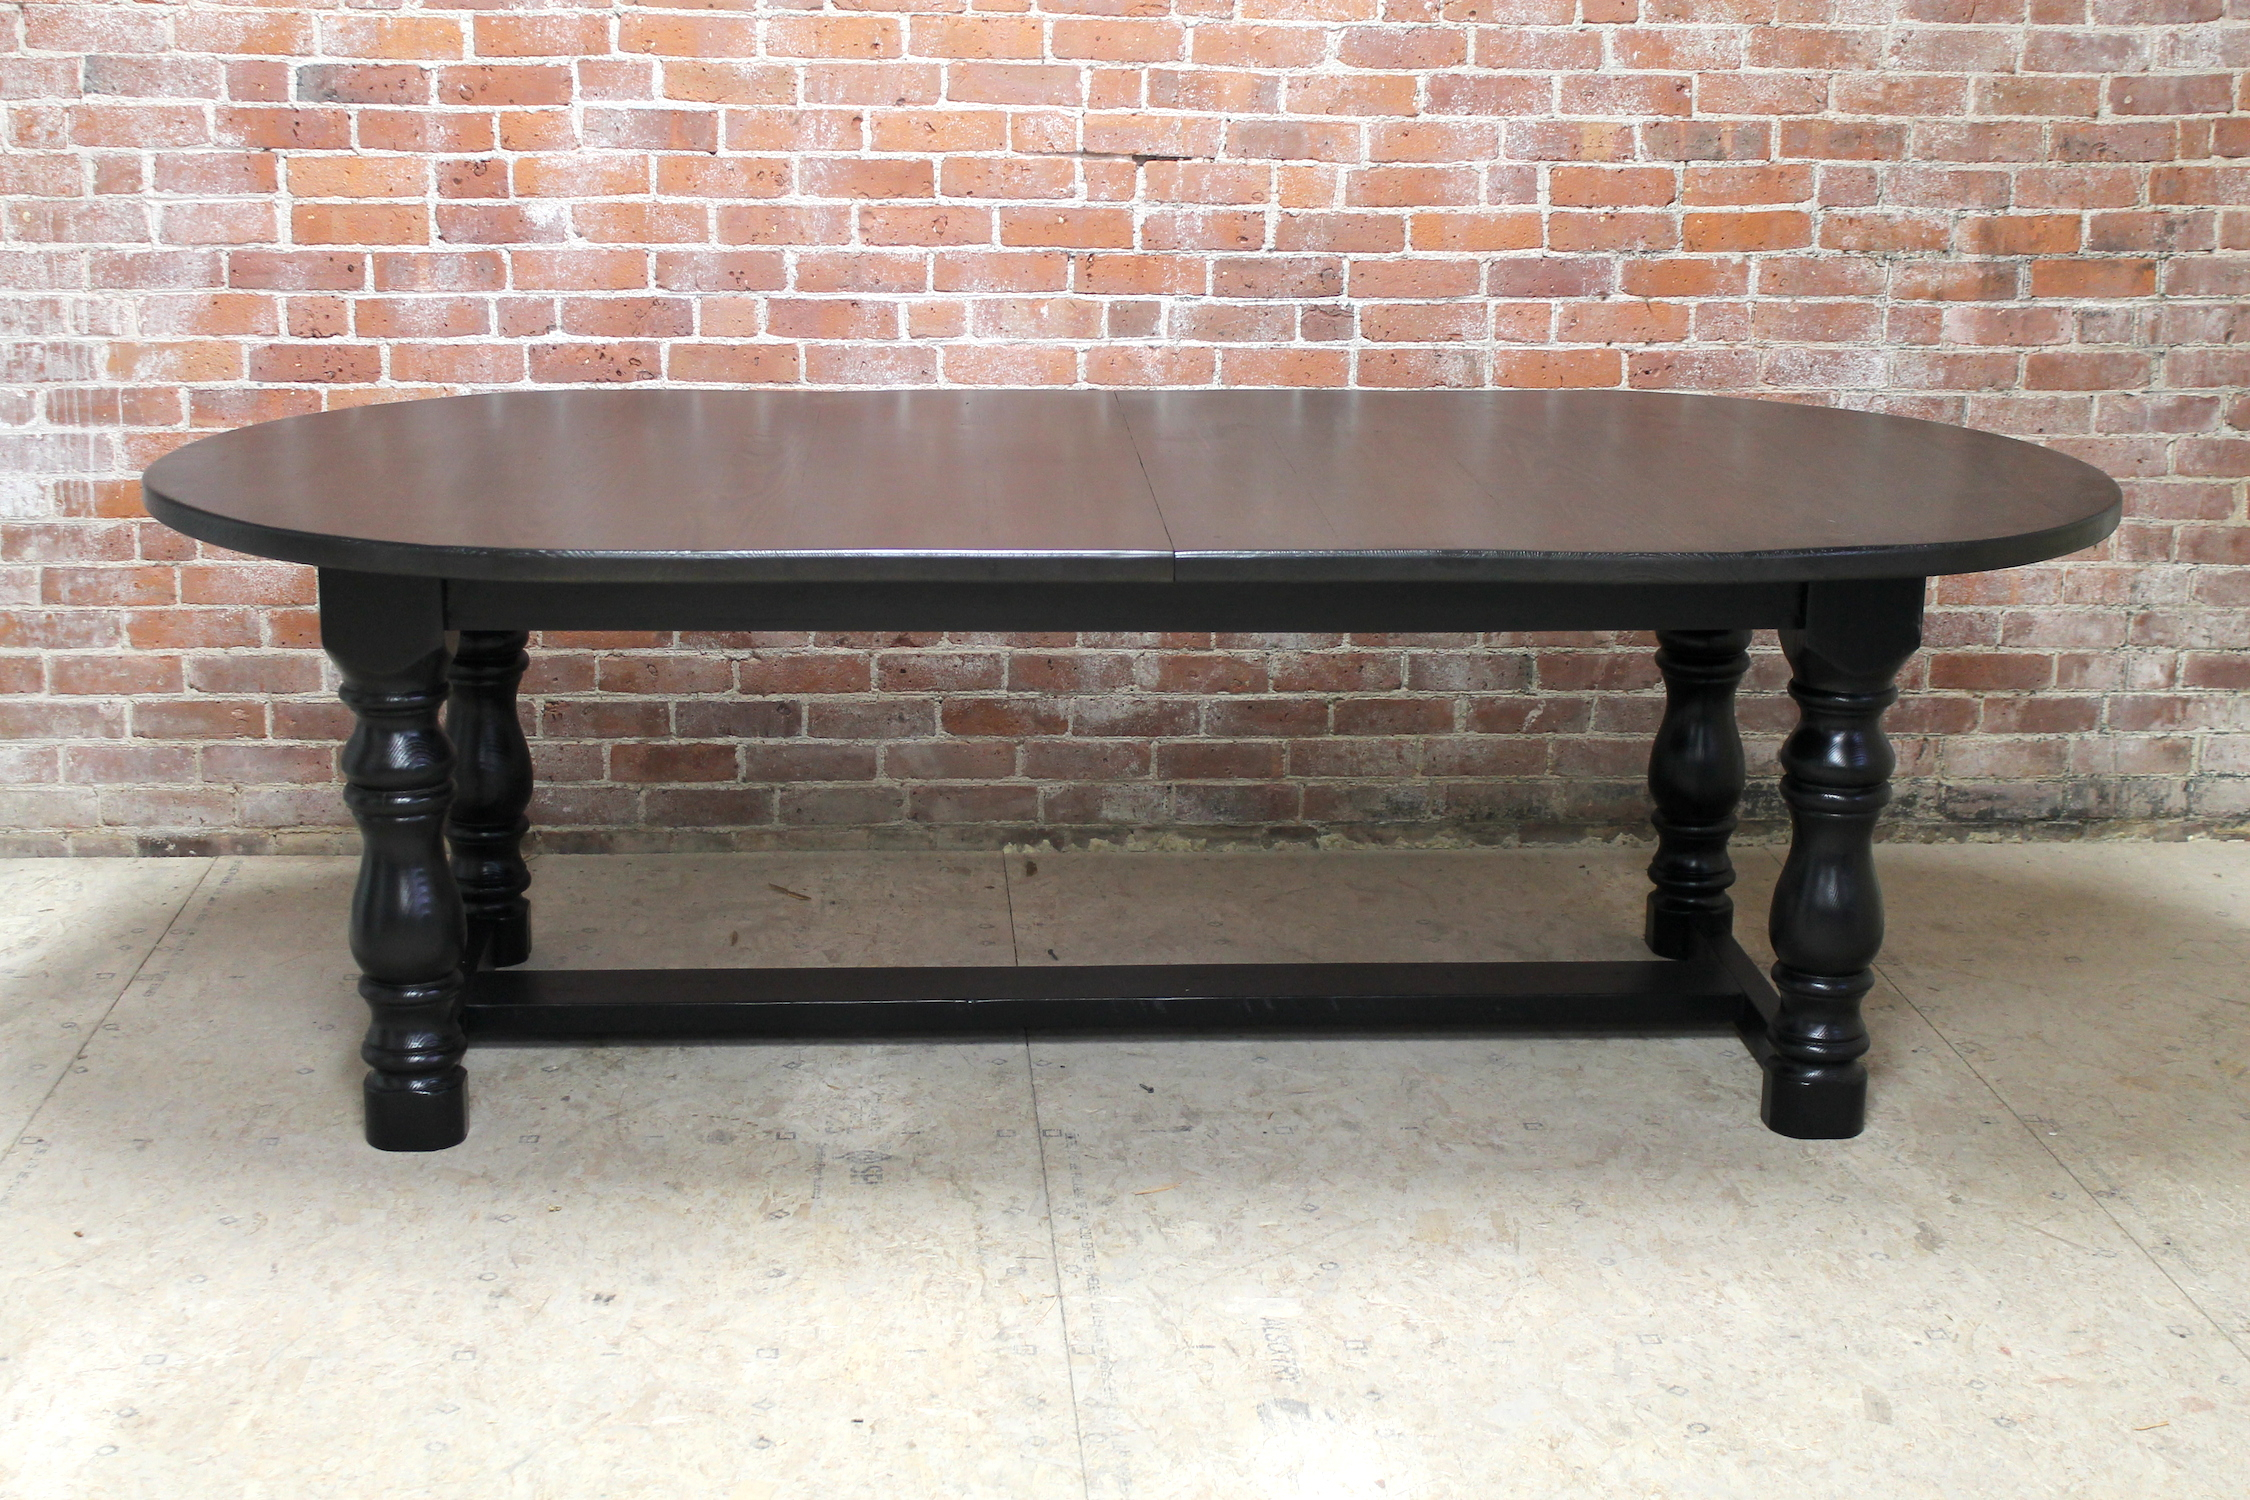 Large Georgian Oval Trestle Table With Extensions For 2018 Adams Drop Leaf Trestle Dining Tables (View 13 of 15)